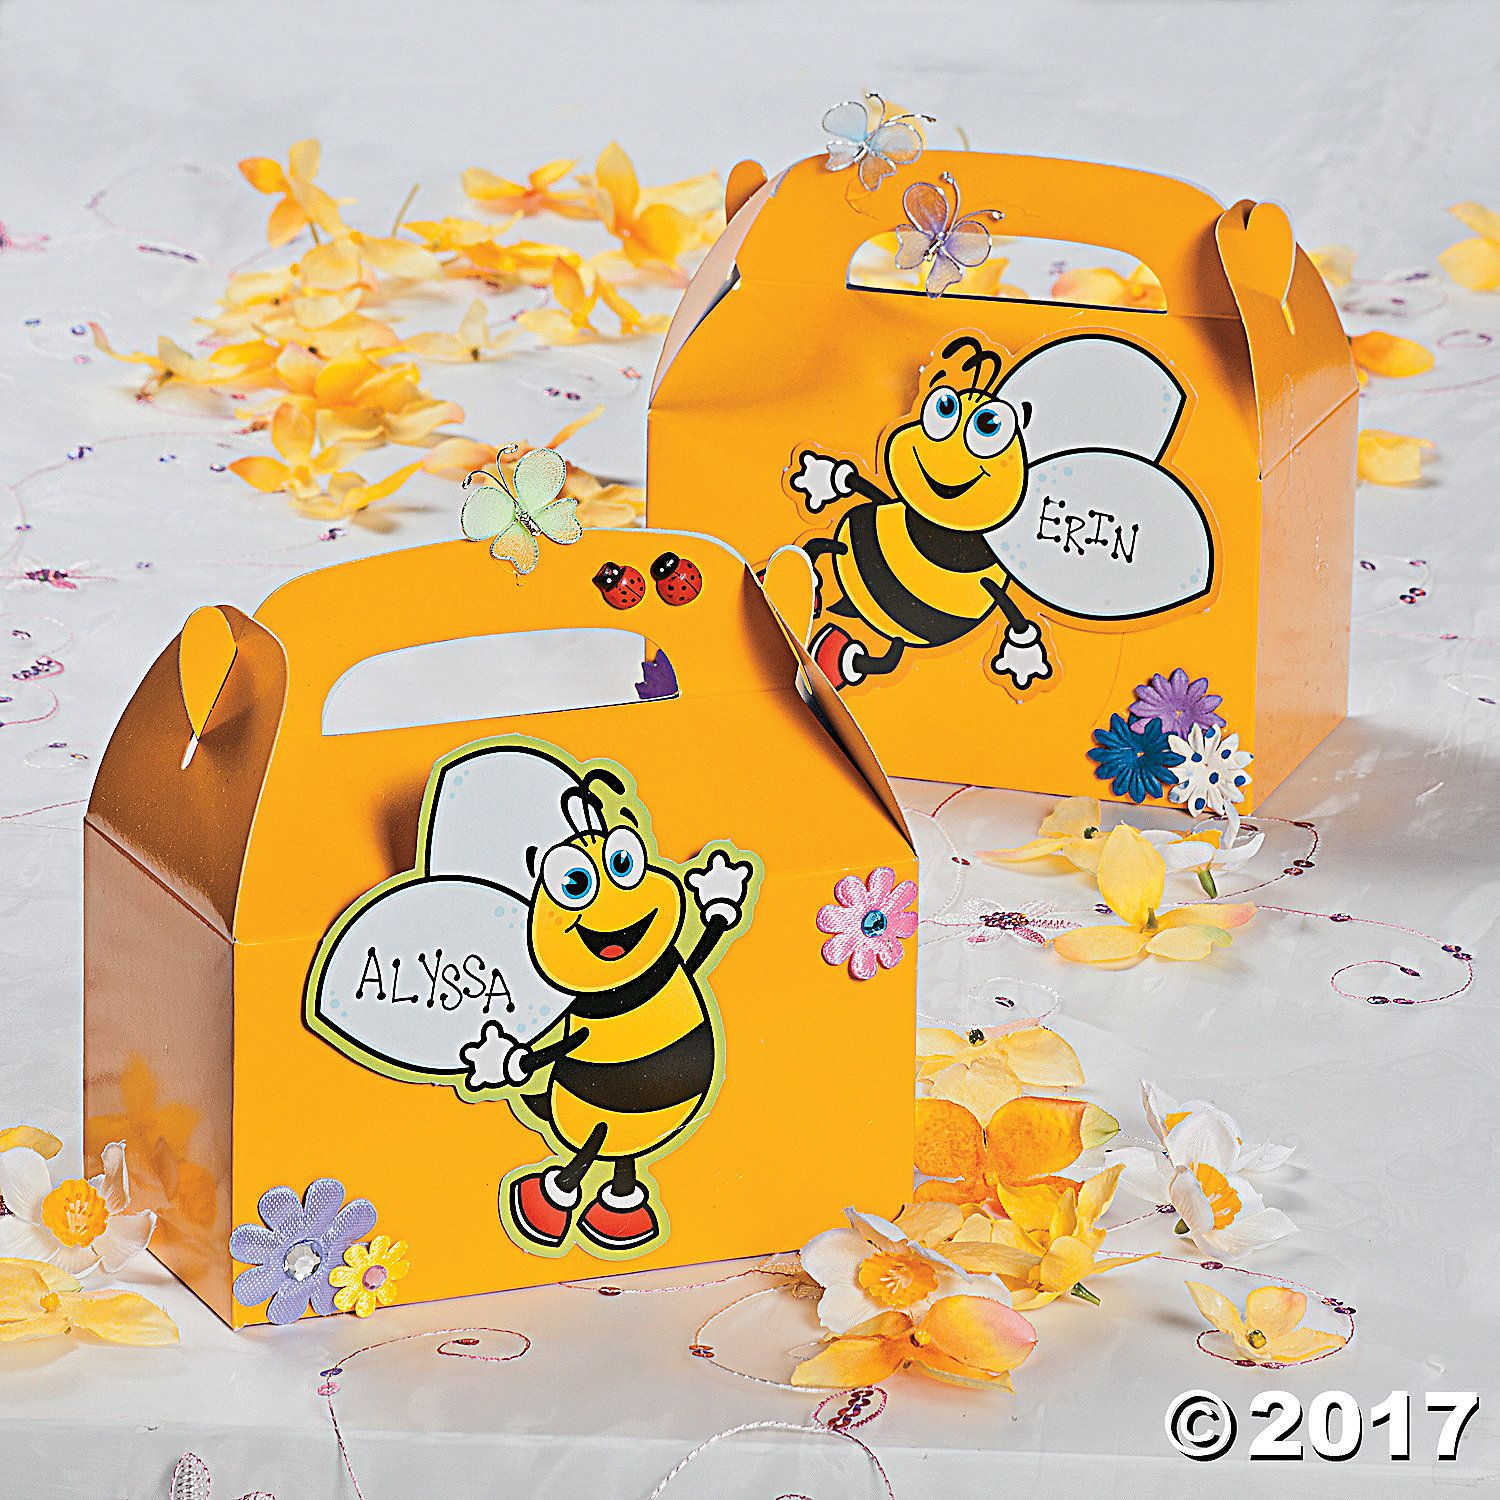 24 x Busy Bee Bumble Bee Yellow /& Black Pencil /& Erasers Class Gifts Party Bags